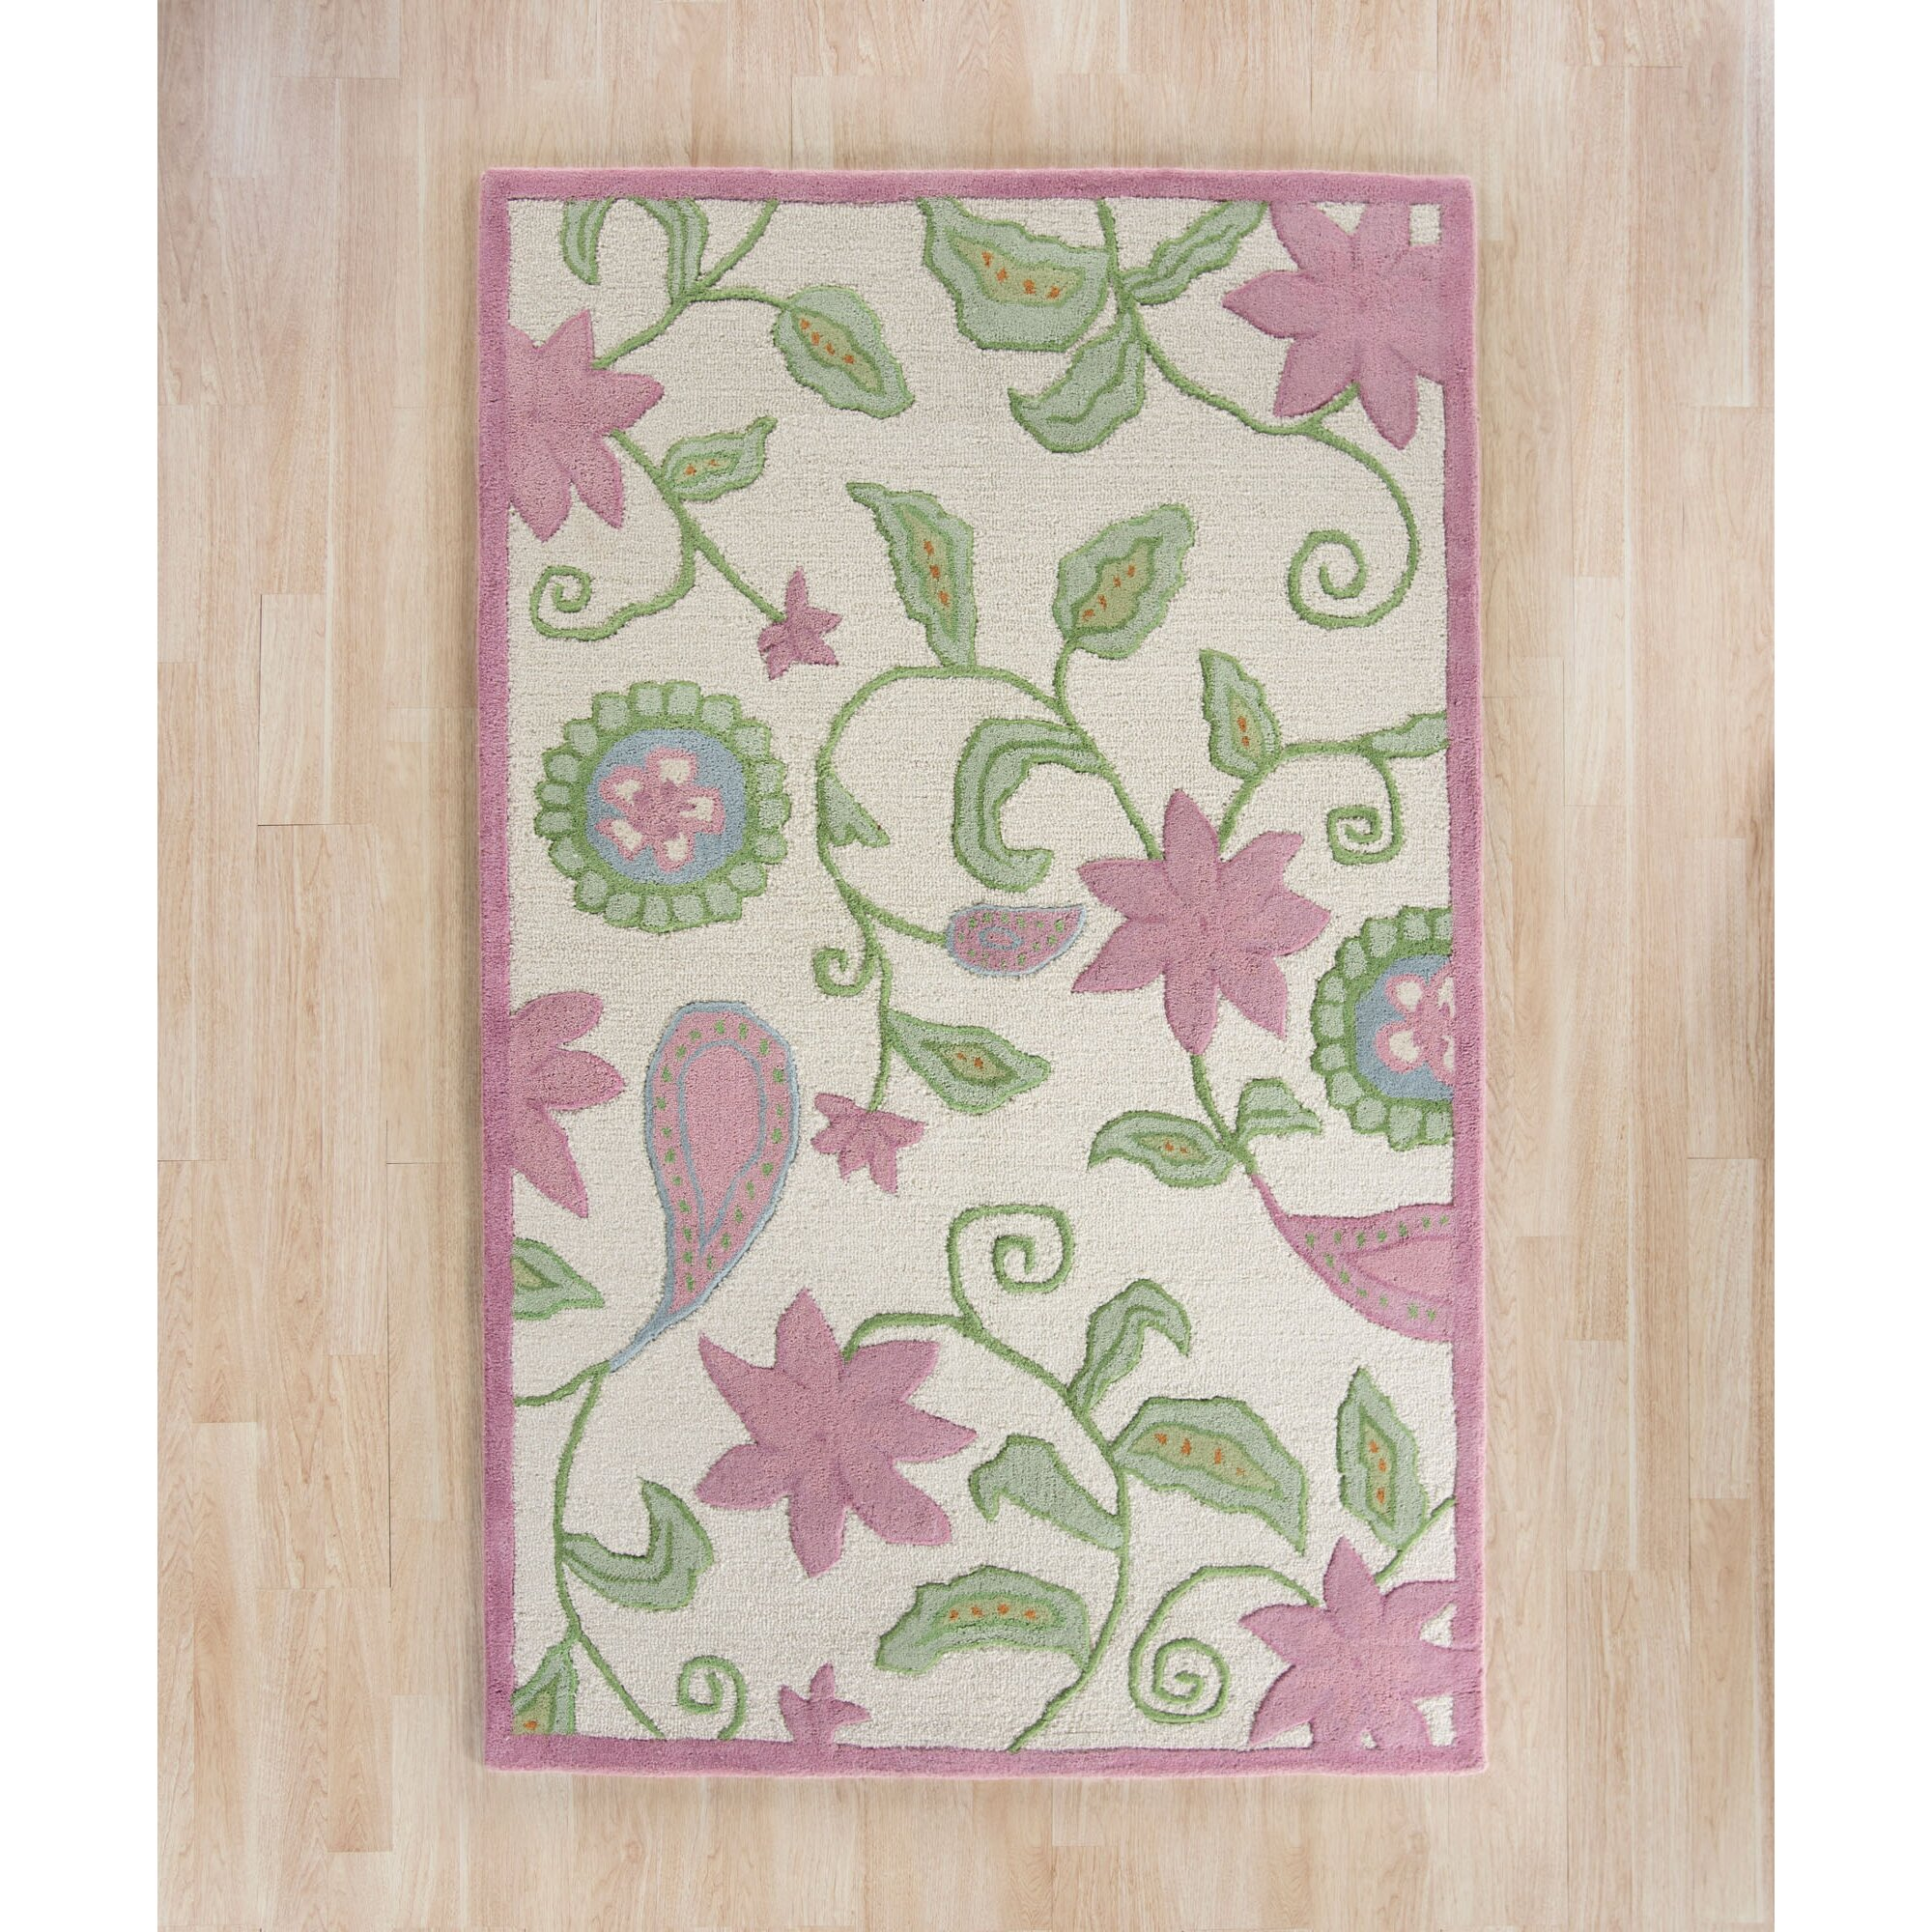 safavieh leaves kids area rug cheerful home office rug wayfair safavieh